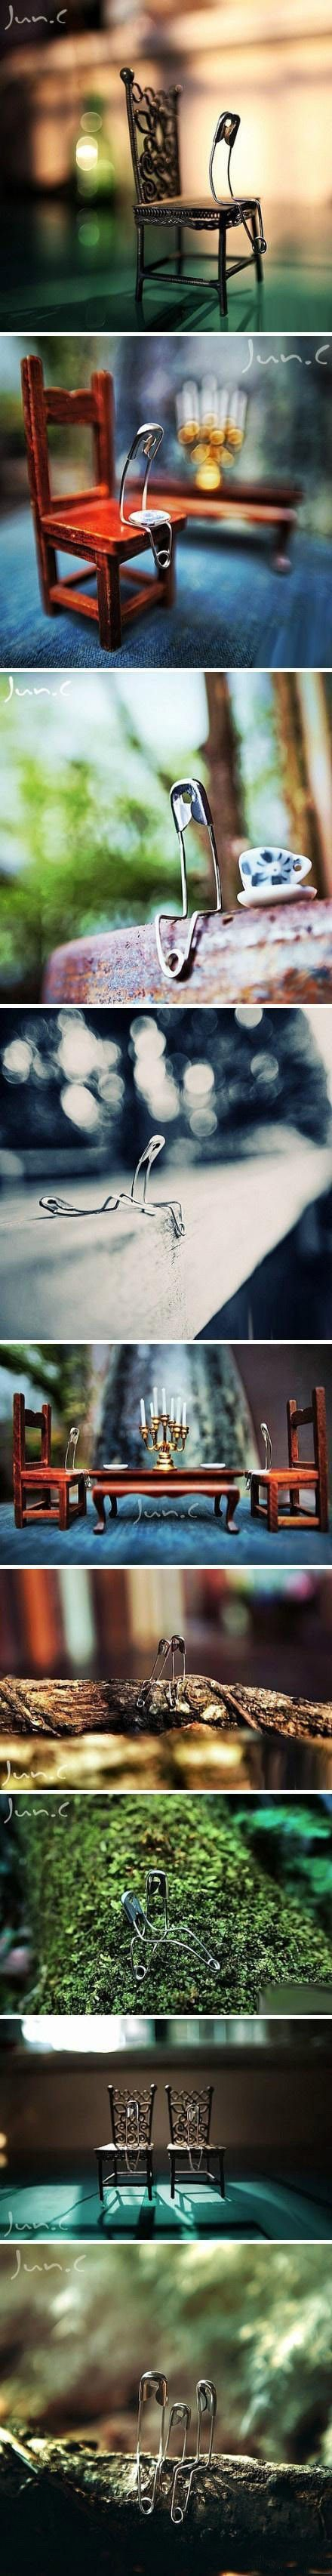 creative photography: Paperclips